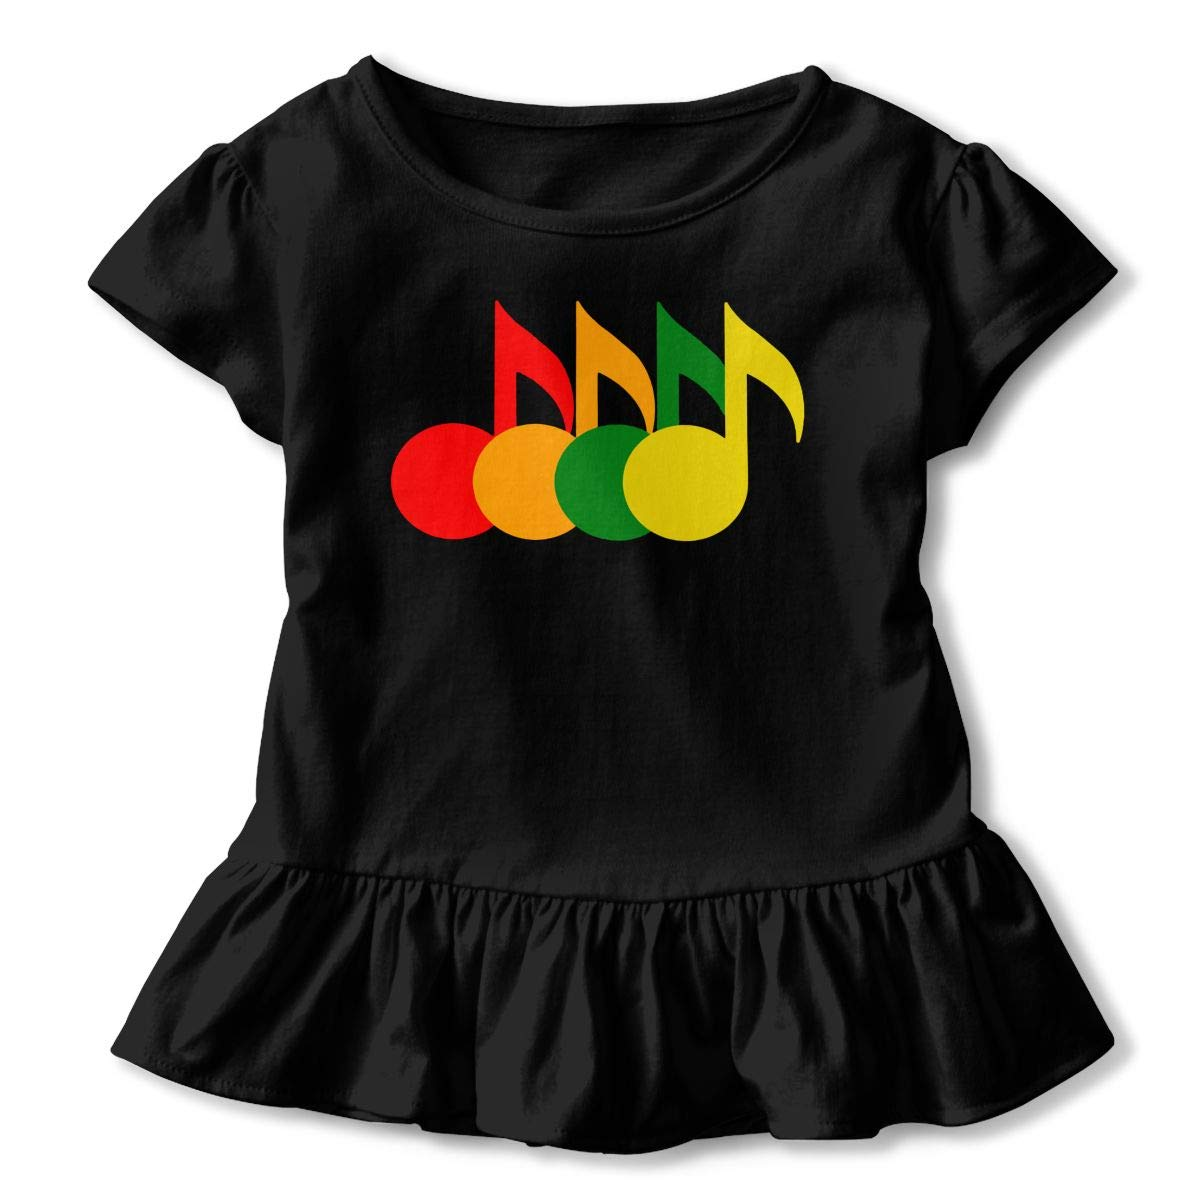 SHIRT1-KIDS Retro Style Music Note Toddler//Infant Girls Short Sleeve T Shirts Ruffles Shirt Tee Jersey for 2-6T